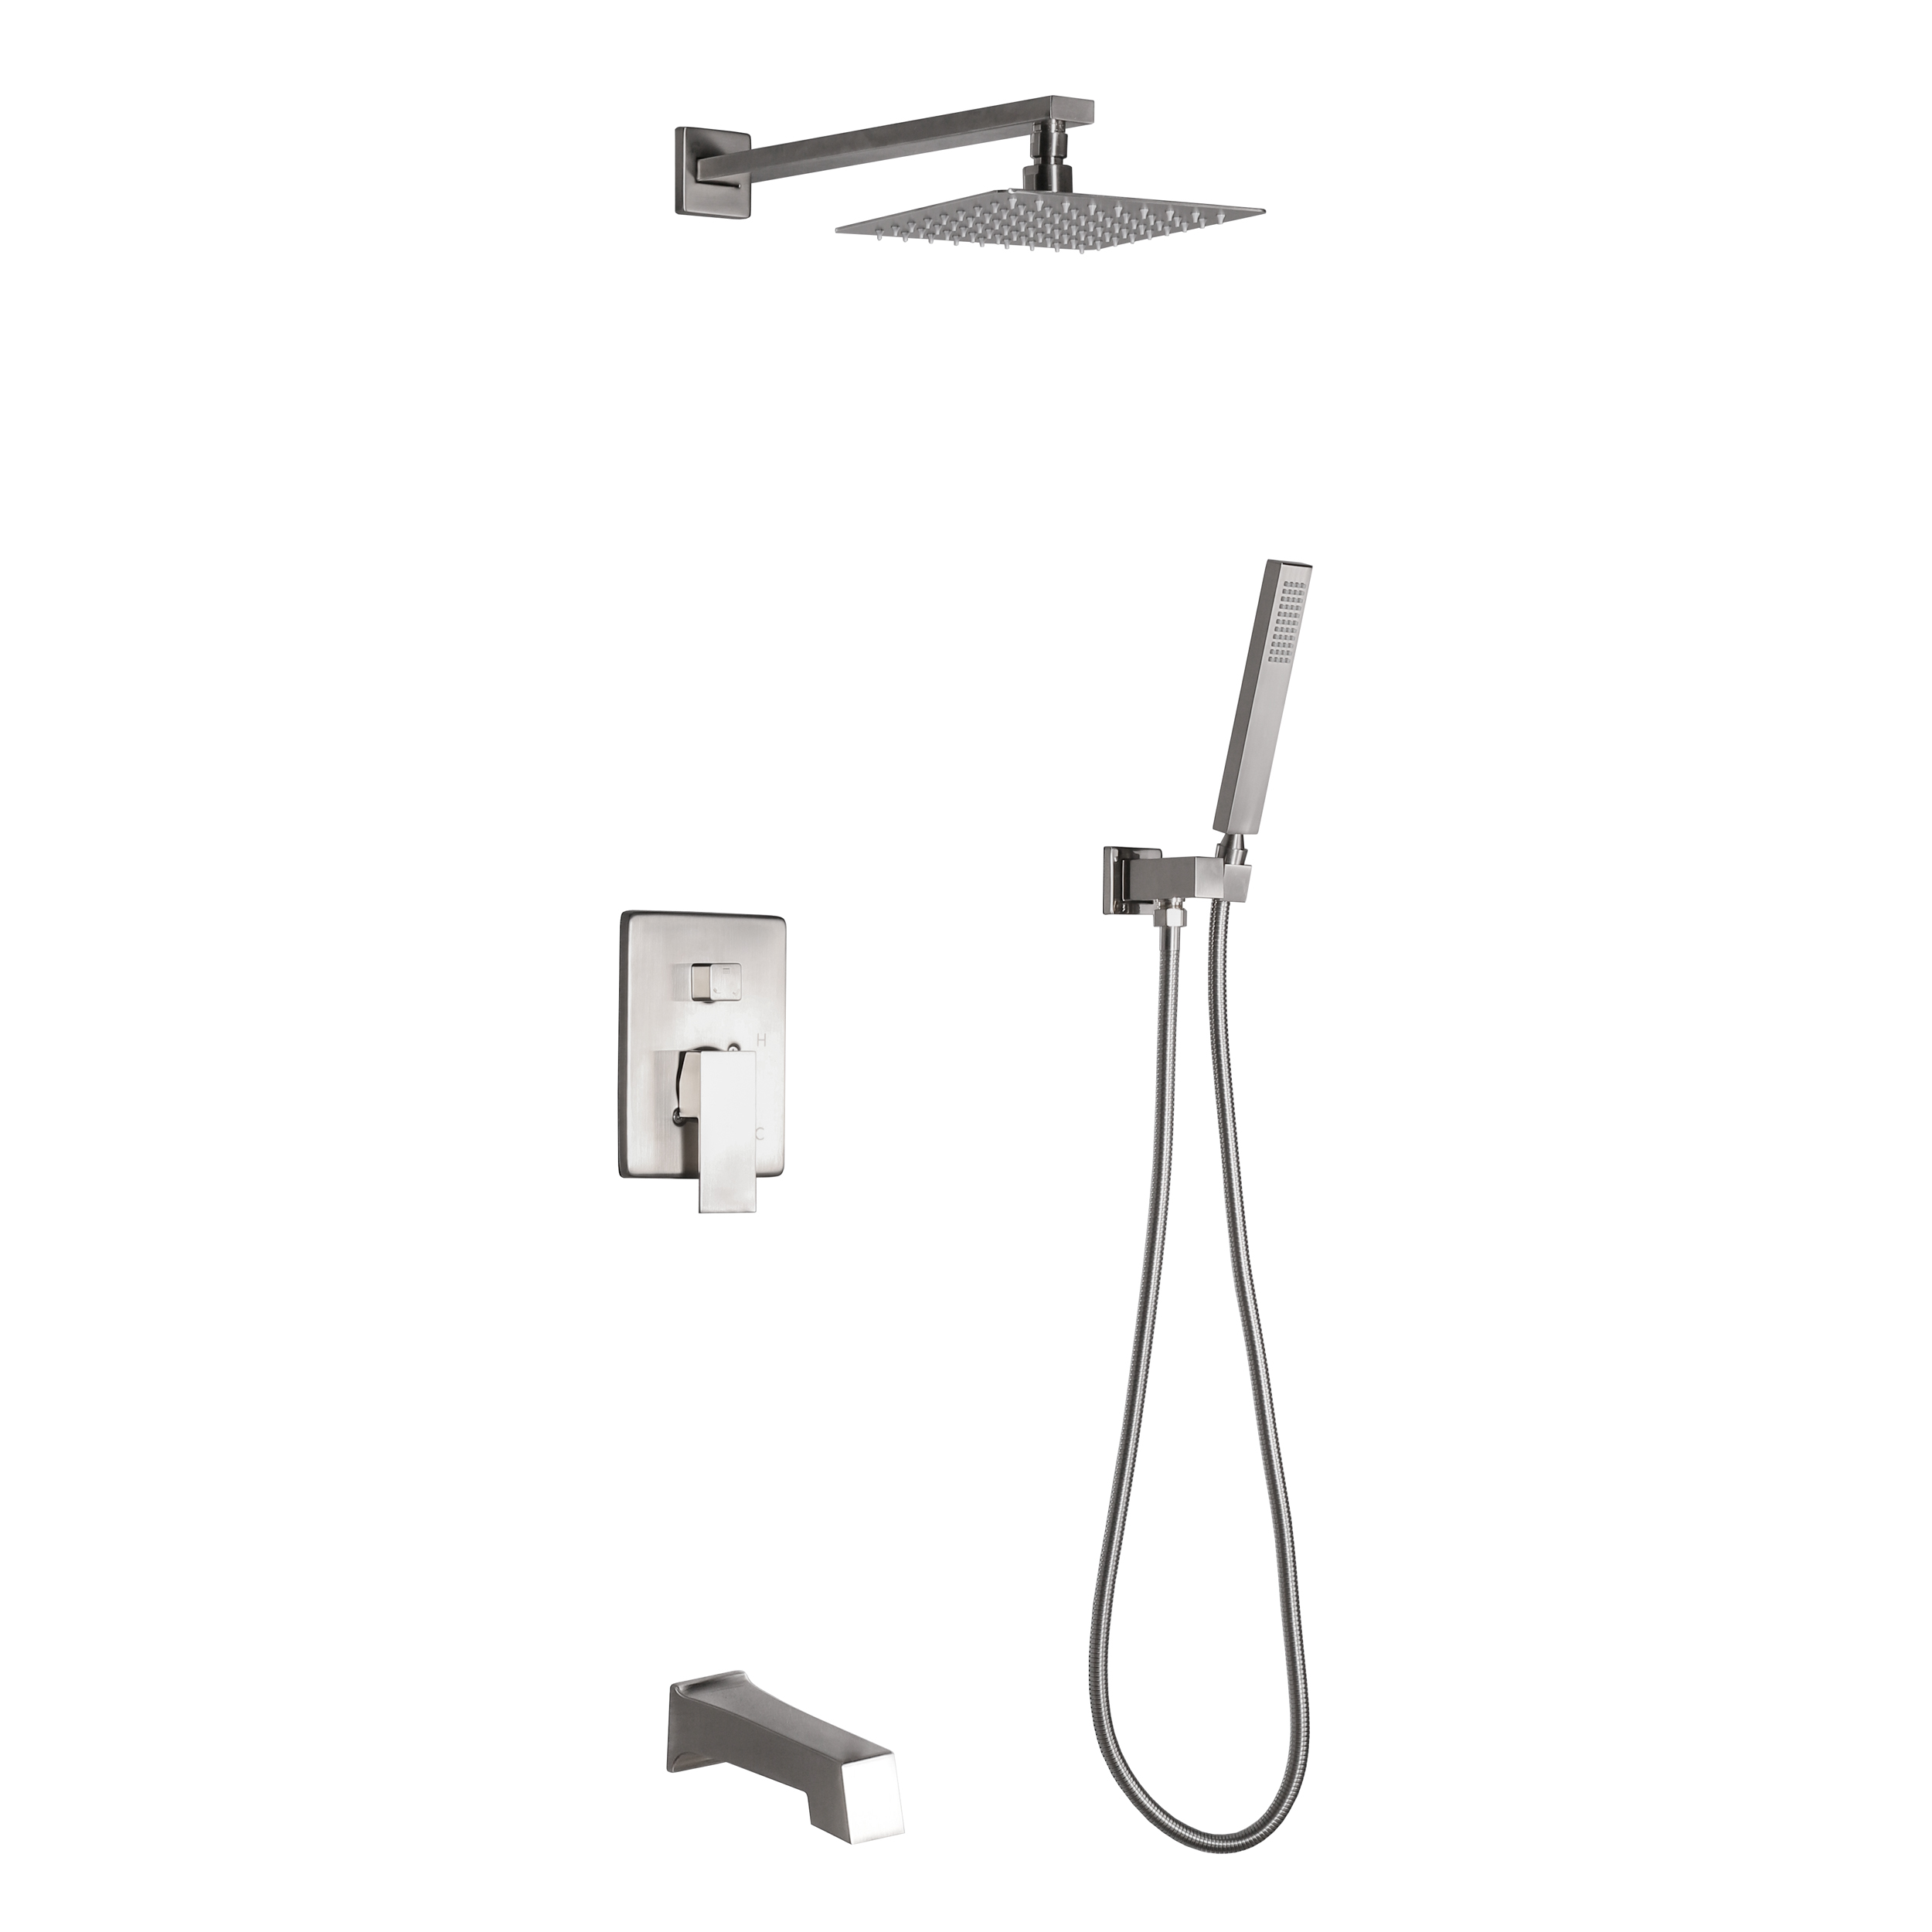 dyconn faucet talise ss312a bnt wall mounted 3 setting shower faucet system w 304t stainless steel shower head faceplate tub spout in brushed